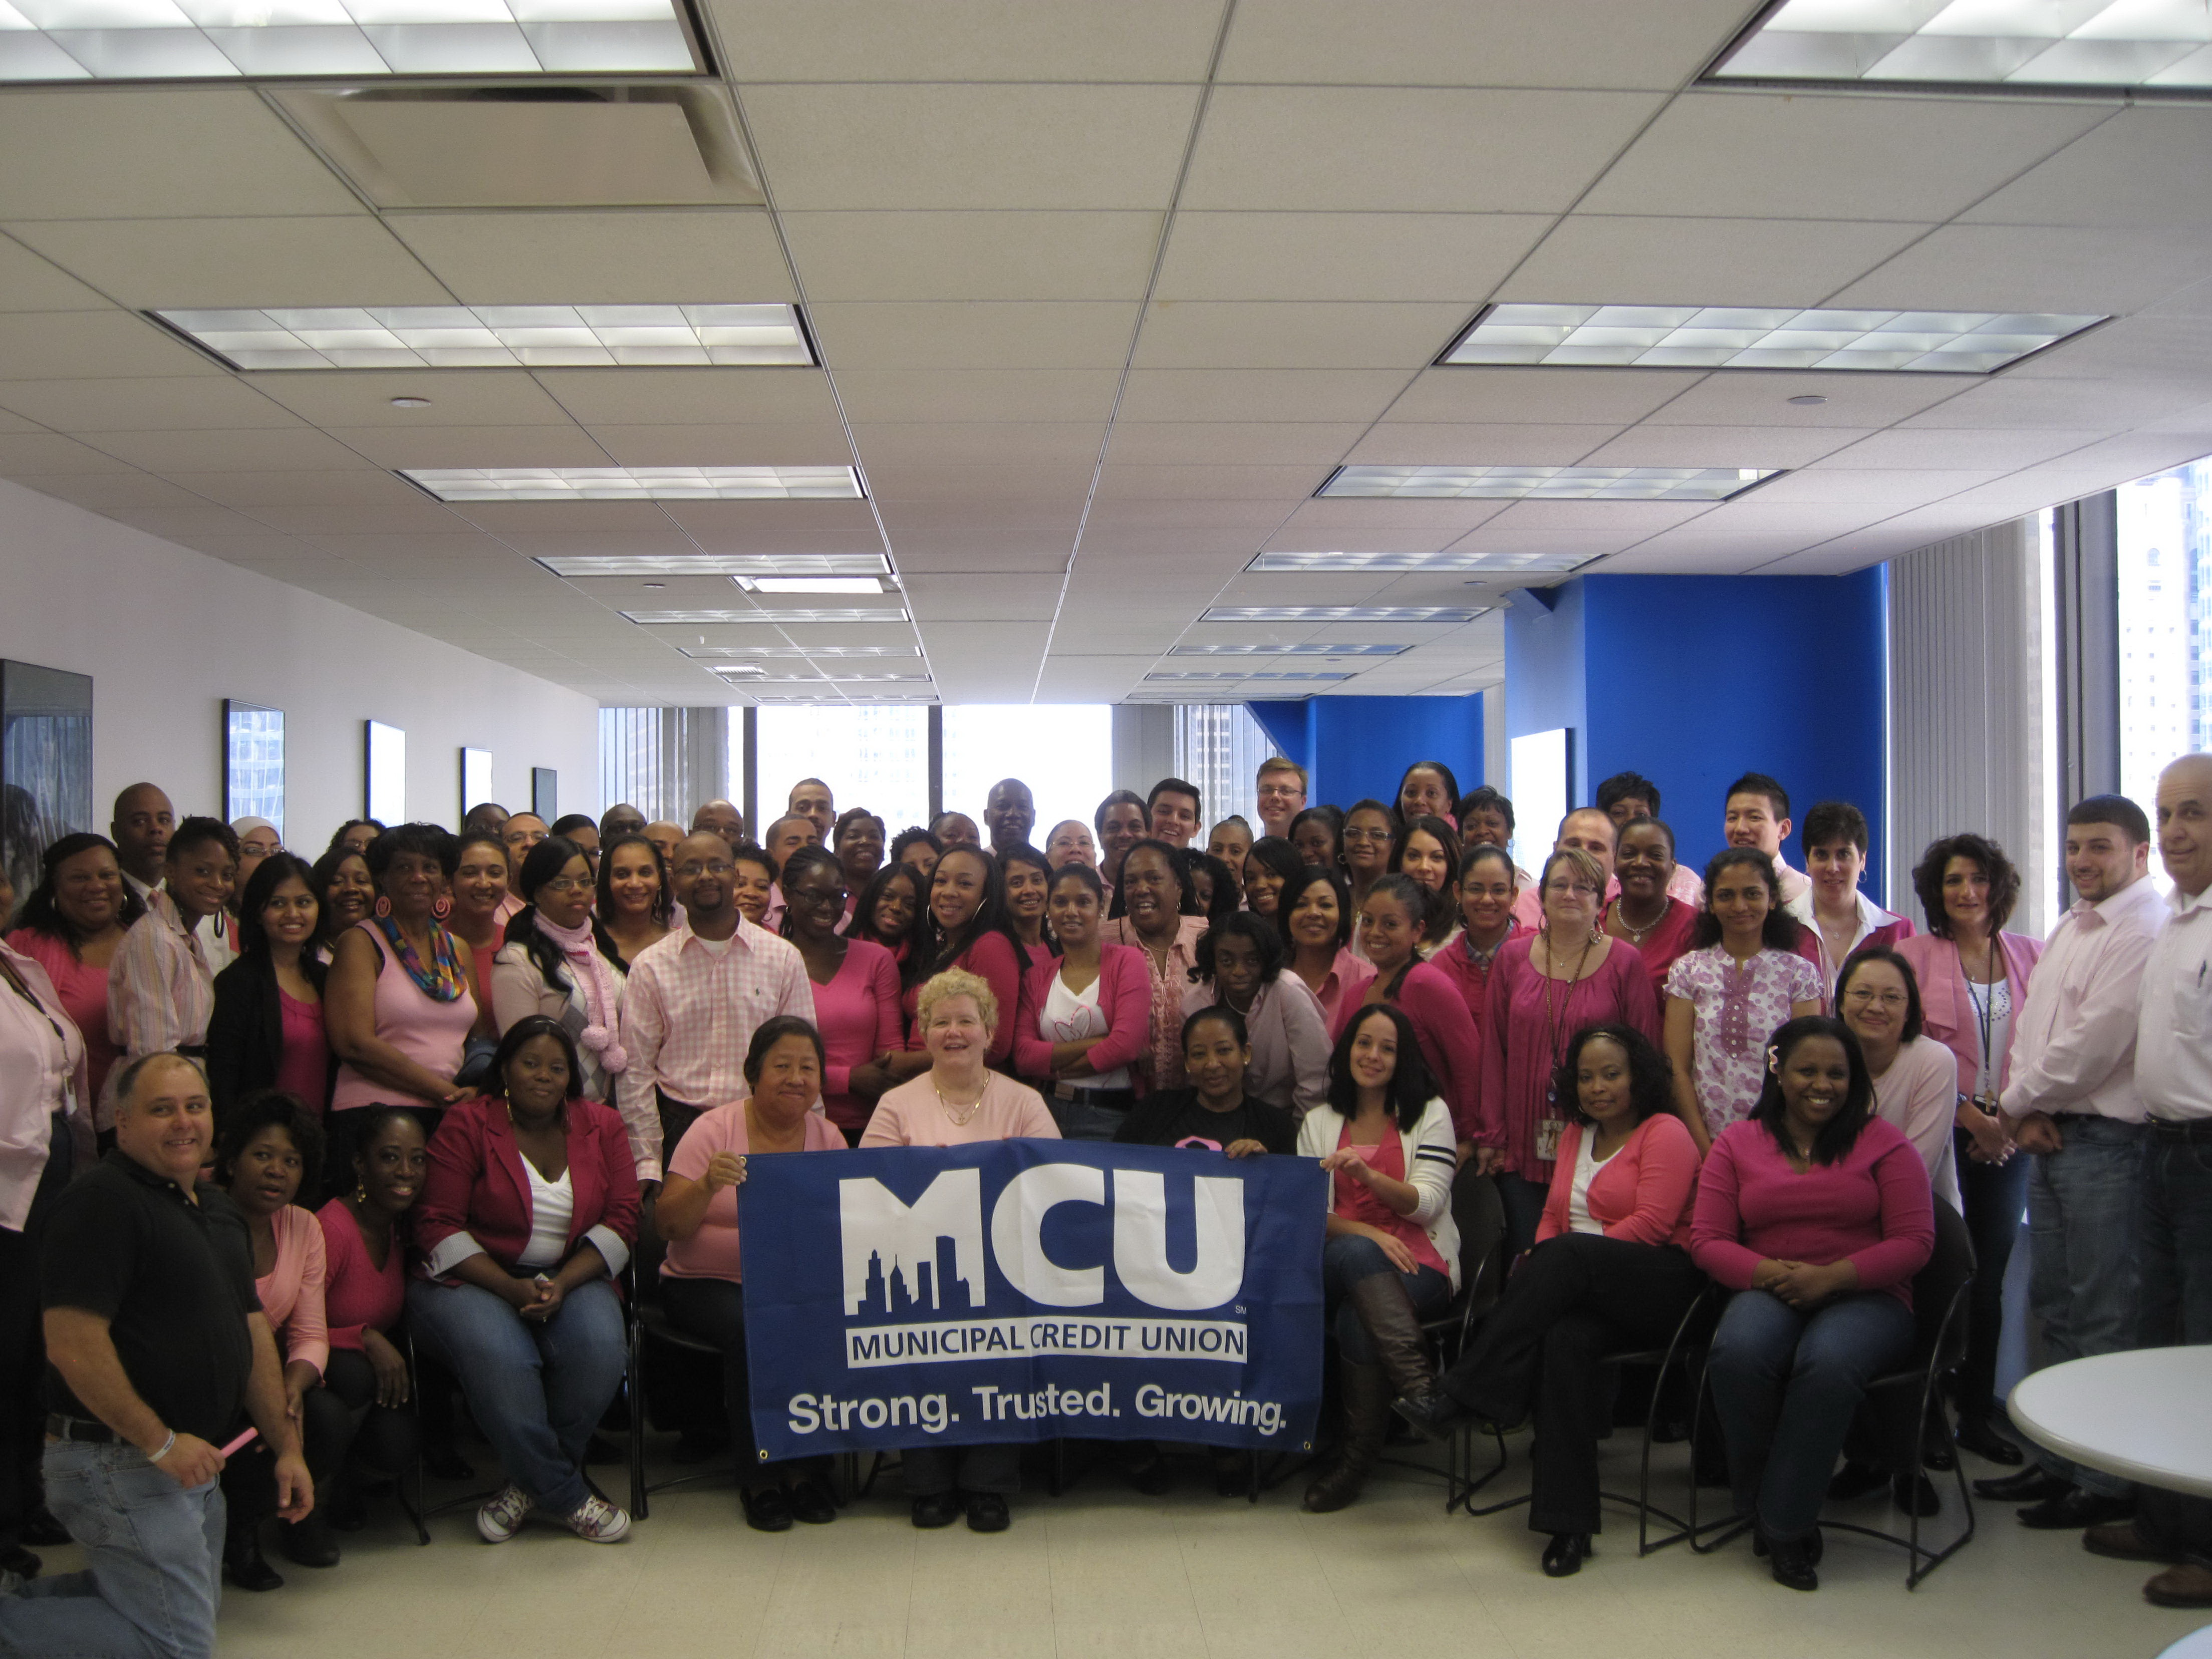 Municipal Credit Union >> Municipal Credit Union Raises 10 000 For Breast Cancer In